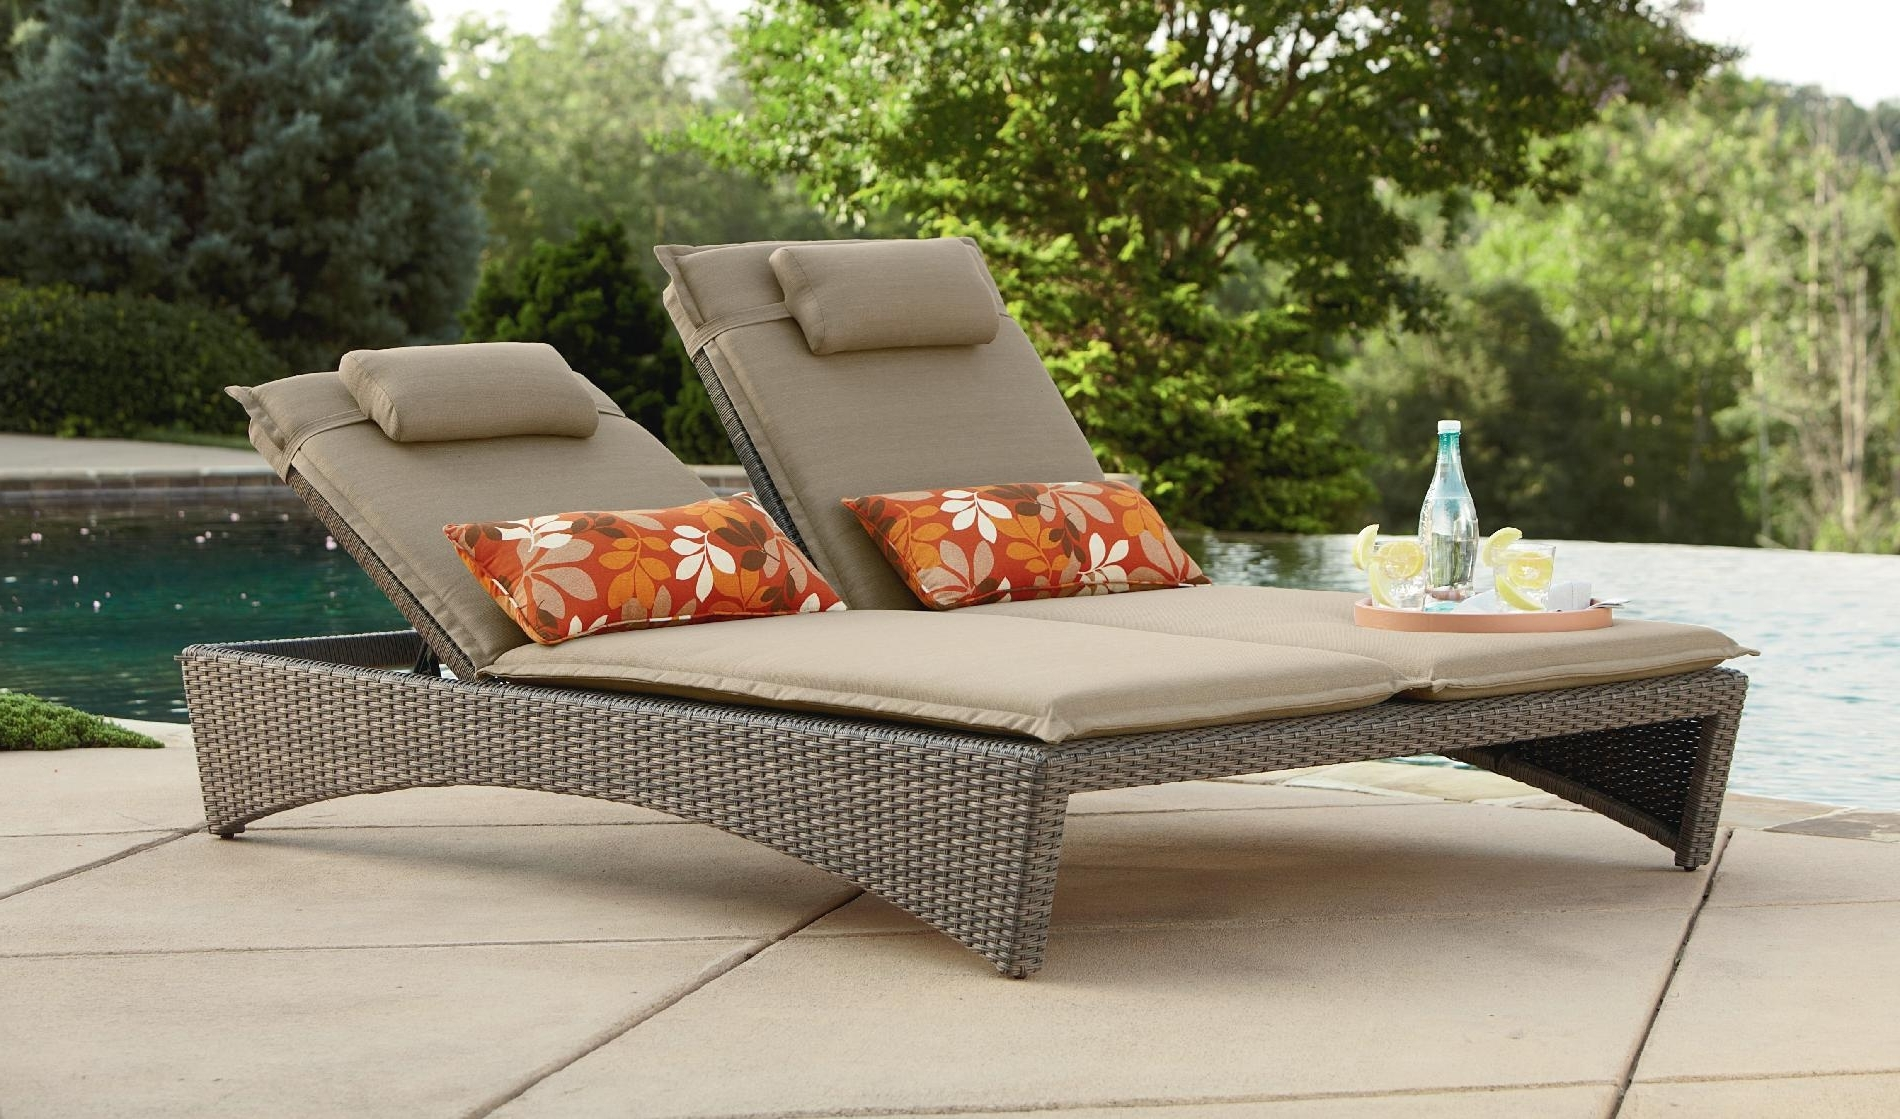 Widely Used Picture 3 Of 35 – Walmart Patio Lounge Chairs Luxury Patio Intended For Double Chaise Lounge Chairs (View 15 of 15)